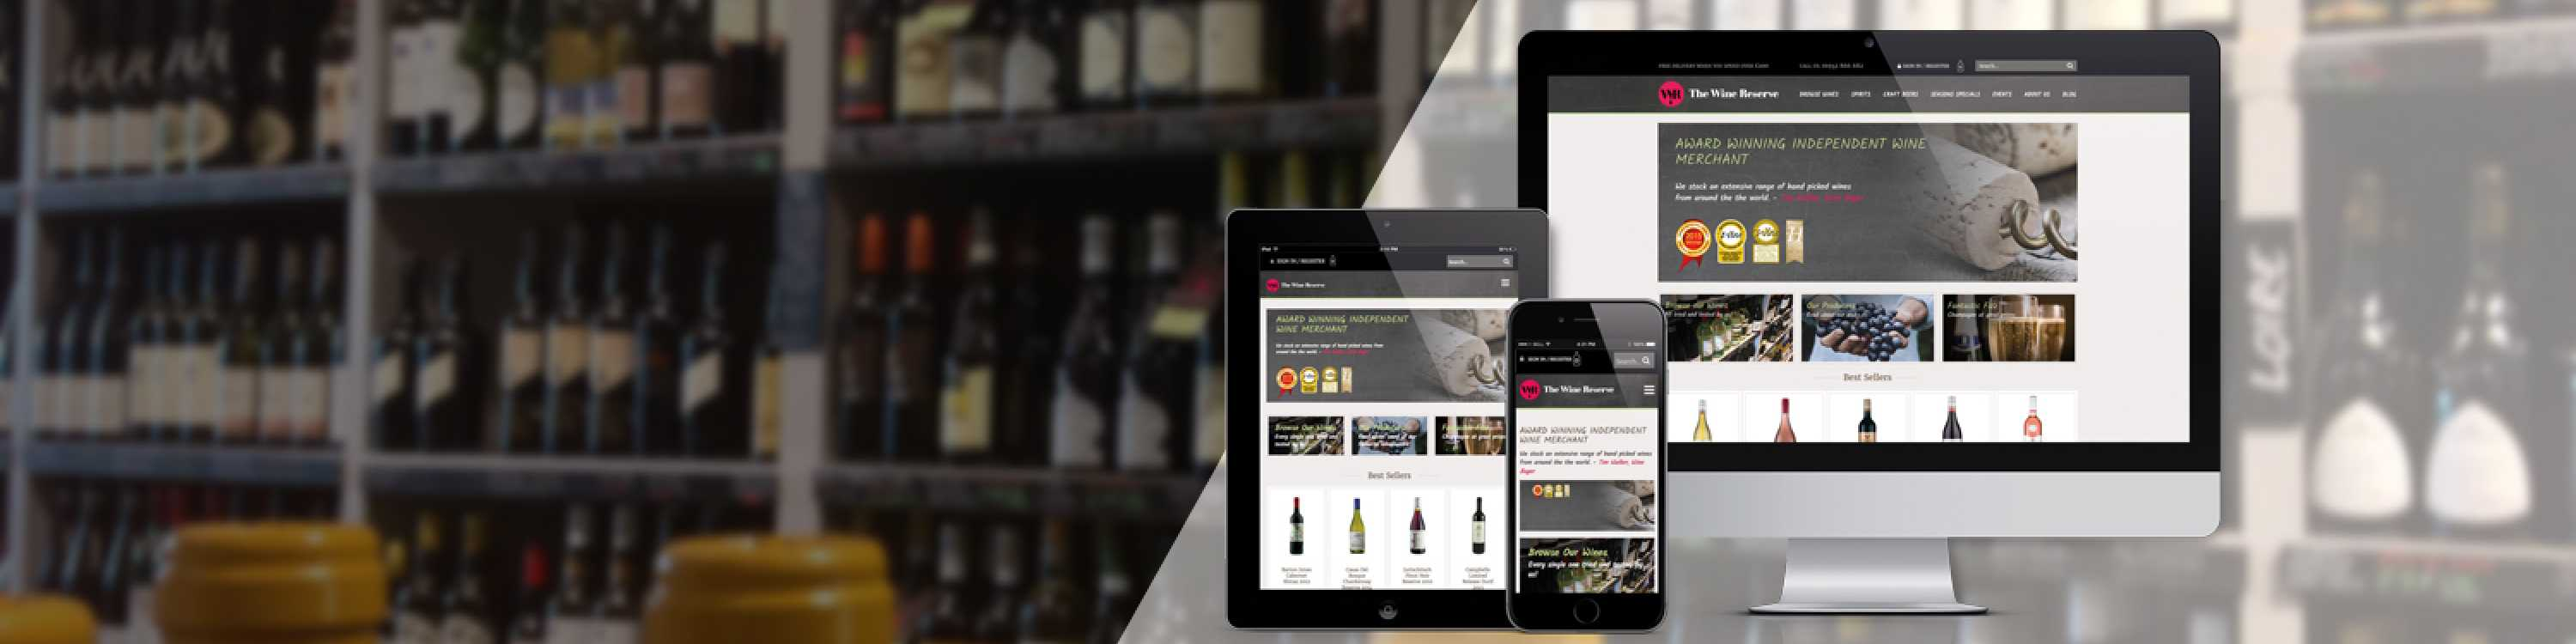 The Wine Reserve shop with mobile and desktop display shown